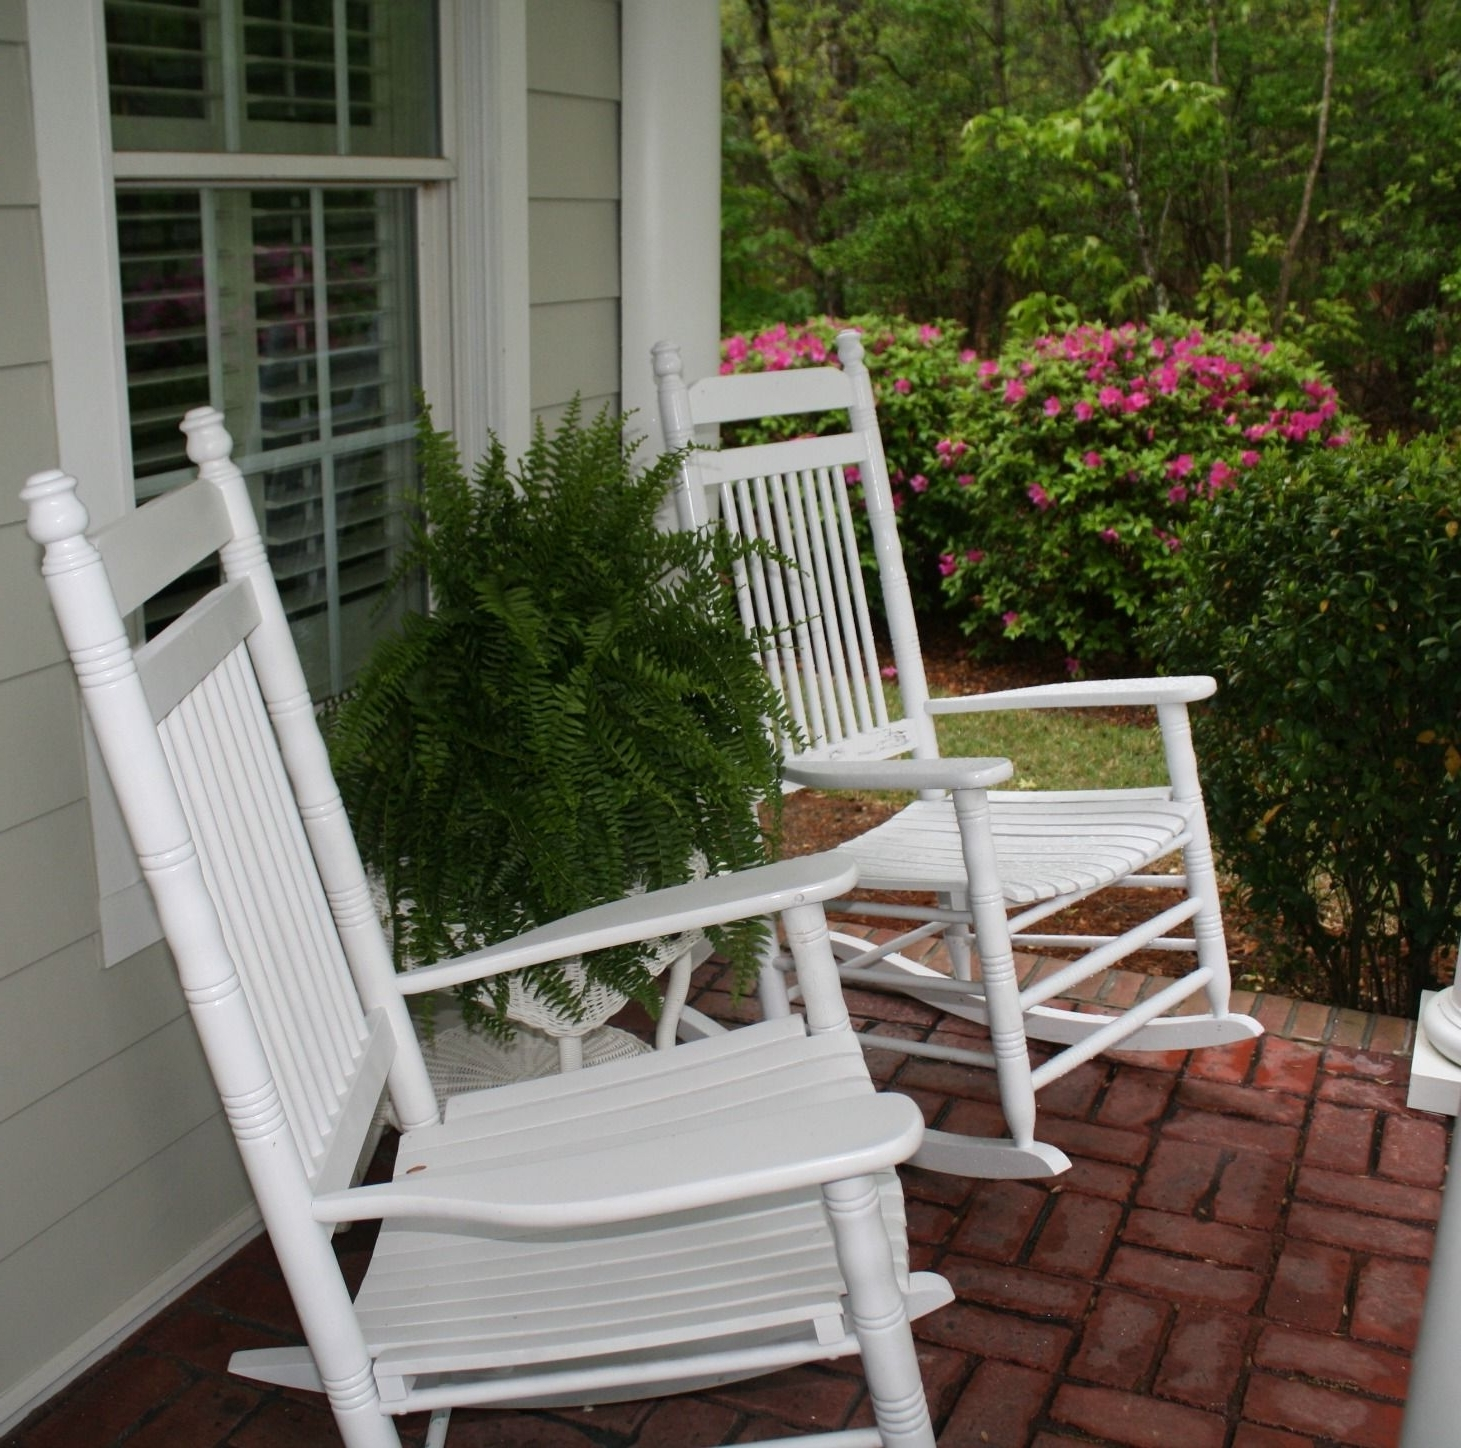 Cracker Barrel White Rocking Chairs Boston Ferns Front Porch (View 16 of 20)